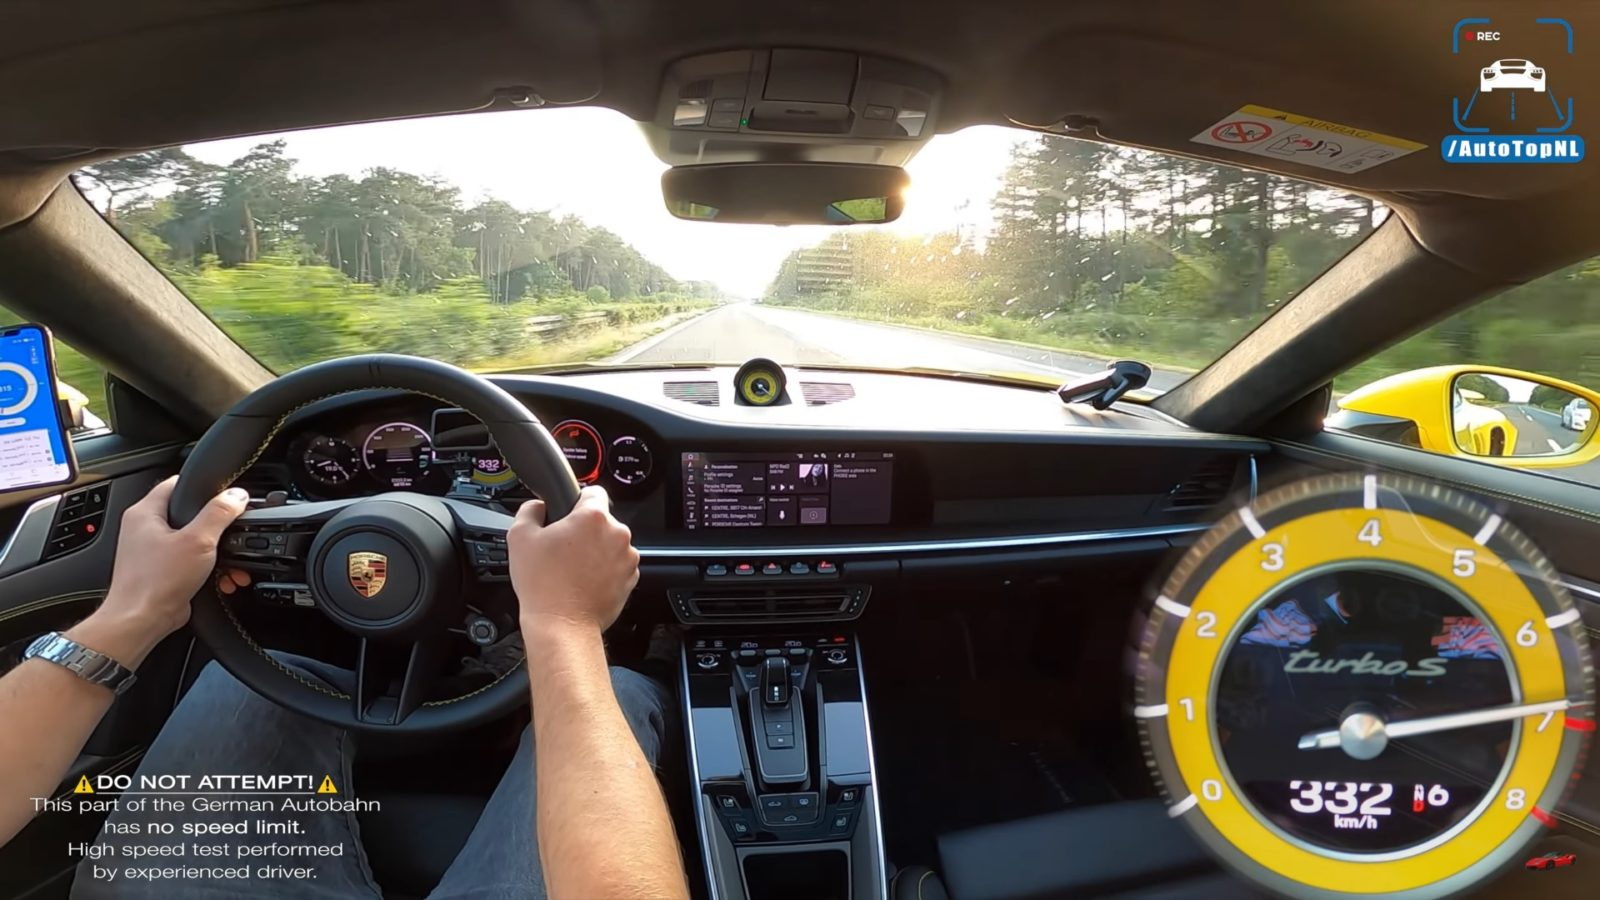 watch-this-992-porsche-911-turbo-s-hit-332-kph-like-it's-nothing